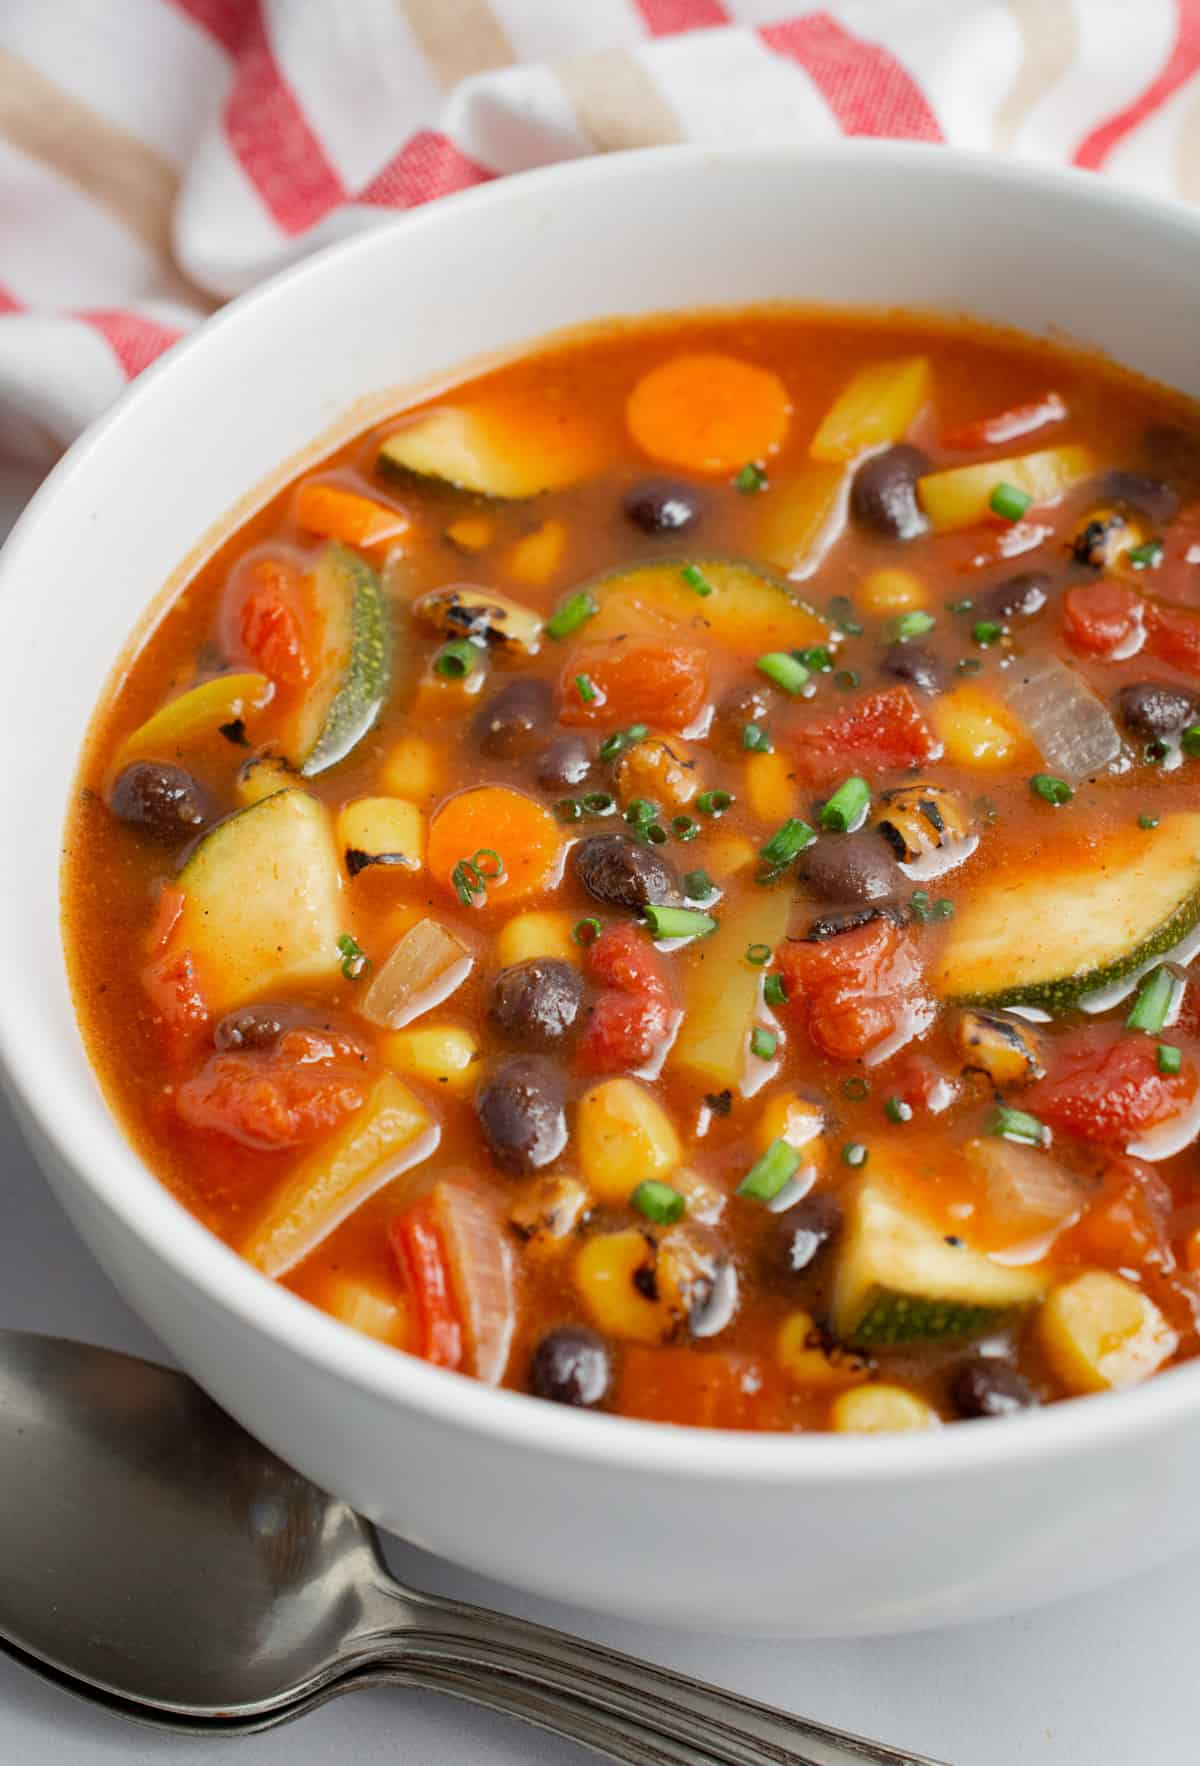 A bowl of vegan southwest vegetable soup with two spoons next to the bowl.